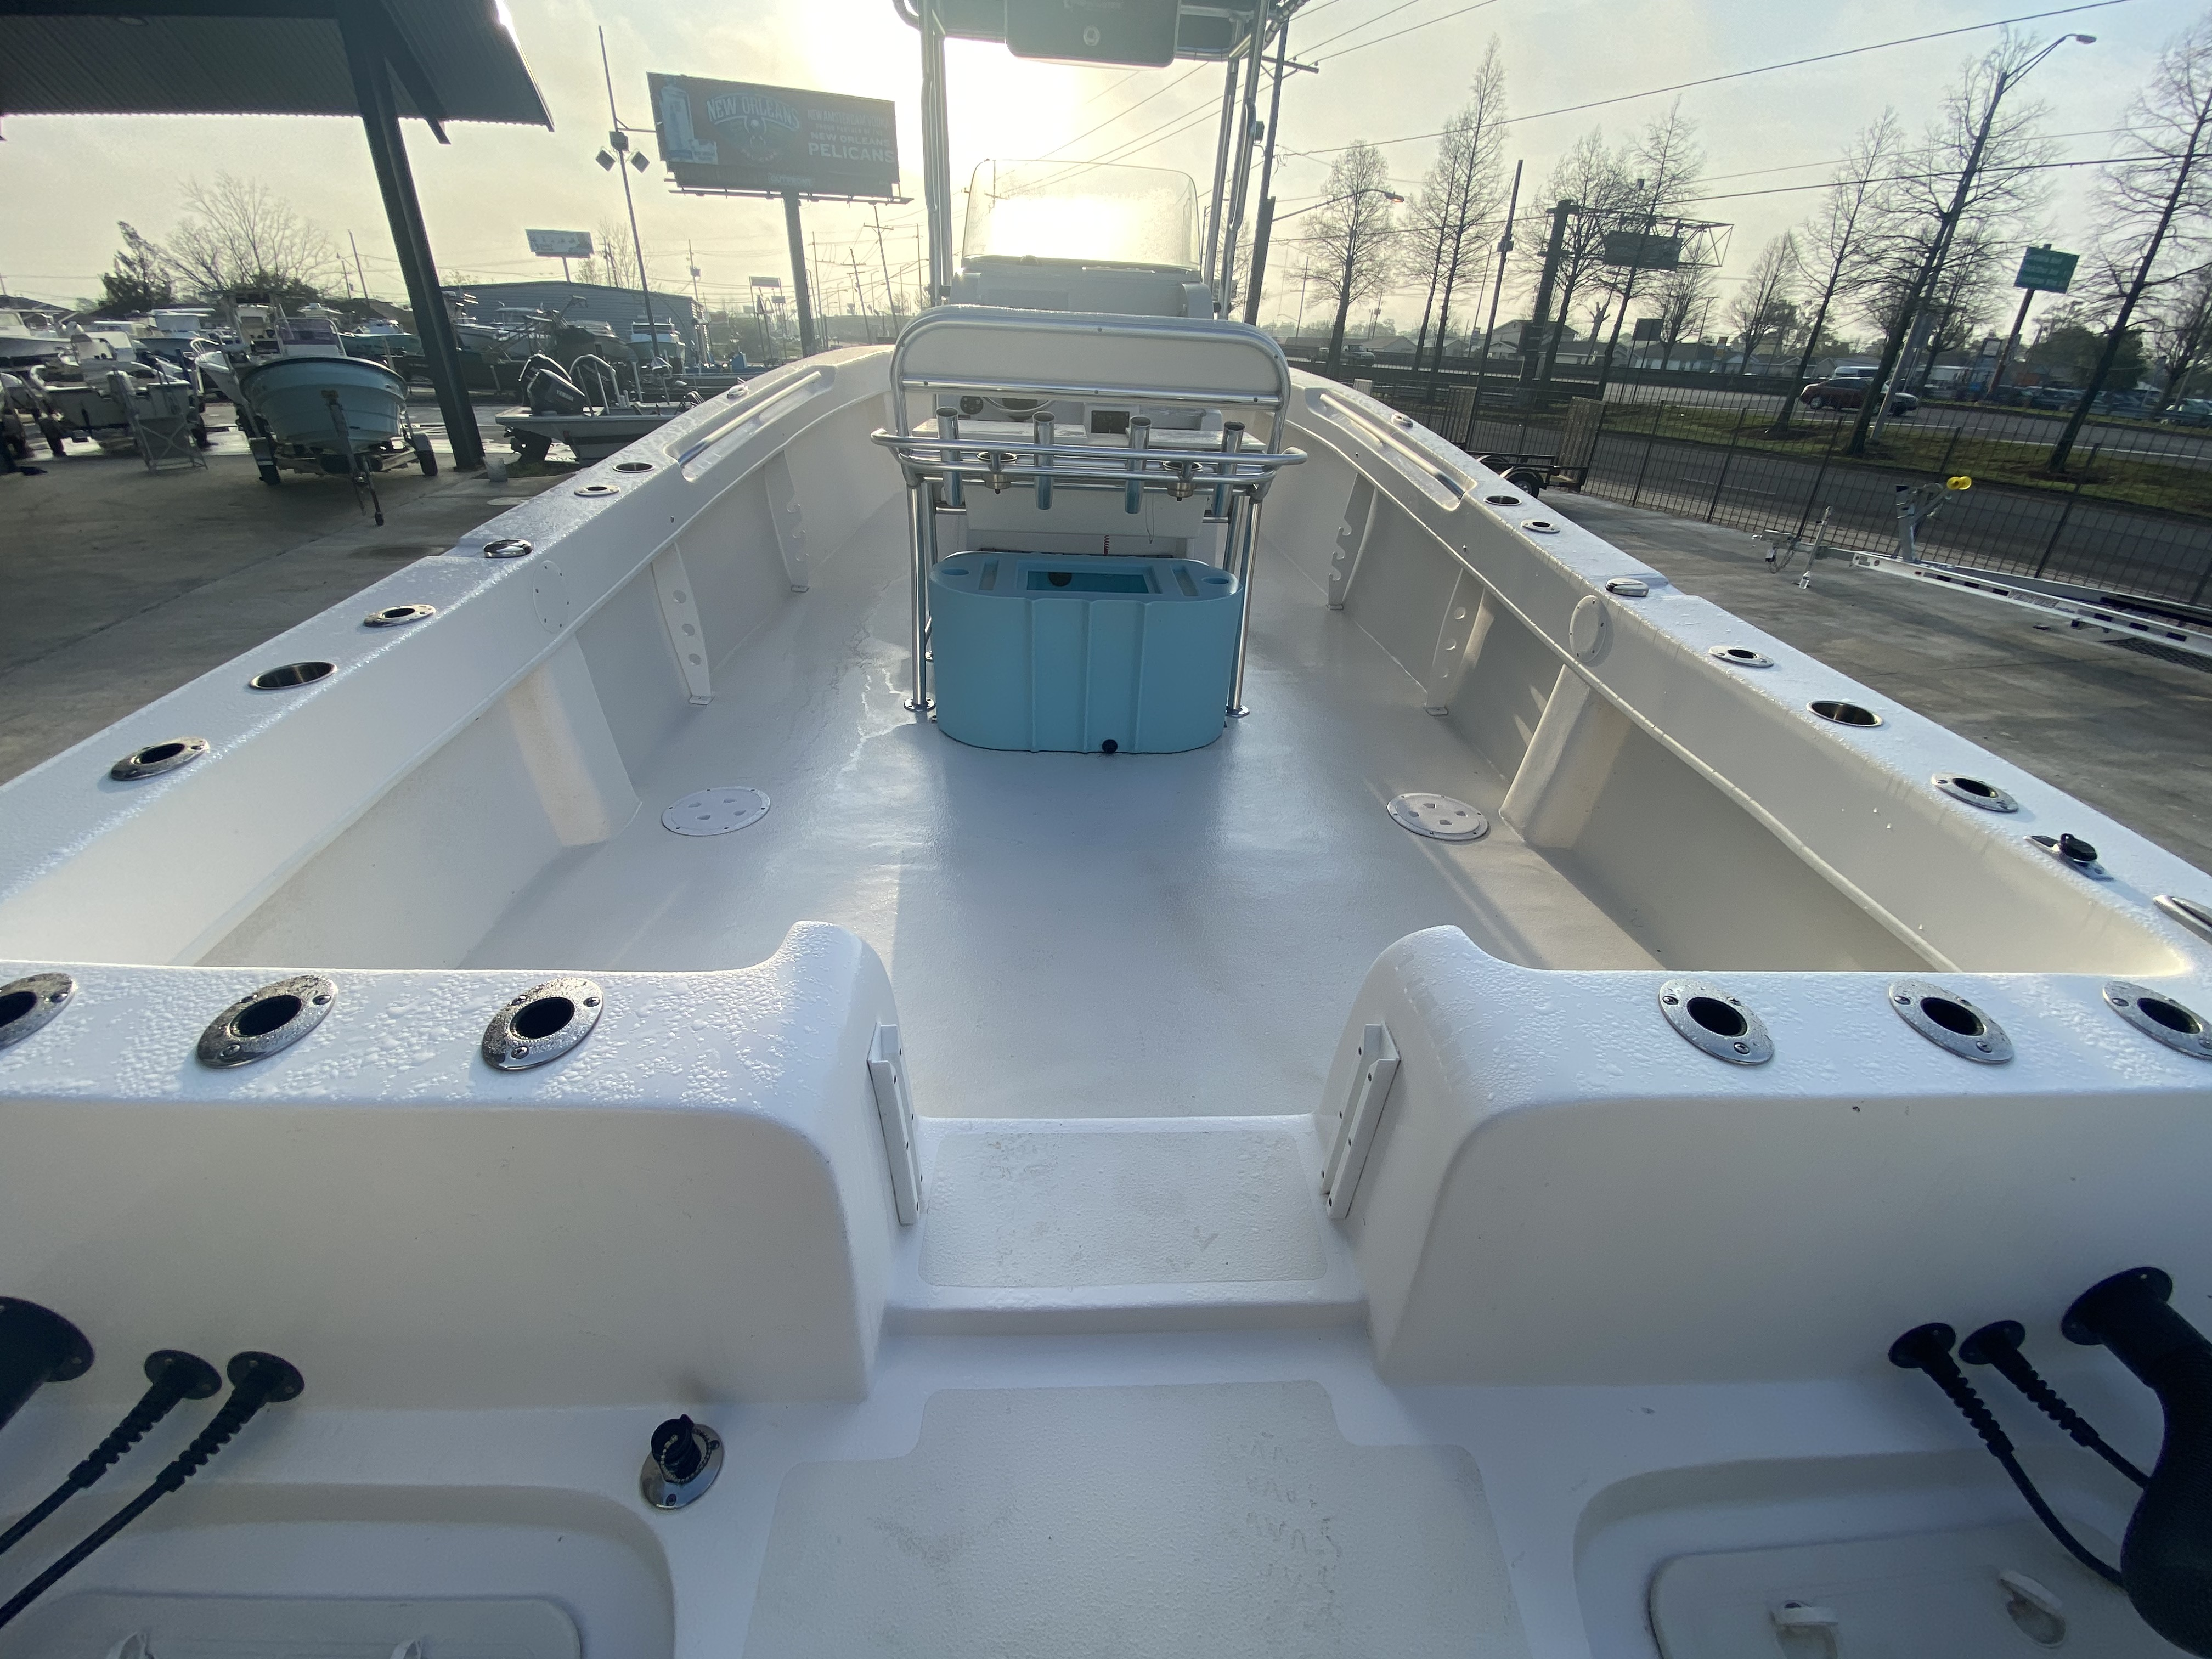 2020 Twin Vee boat for sale, model of the boat is 26 Pro & Image # 14 of 24